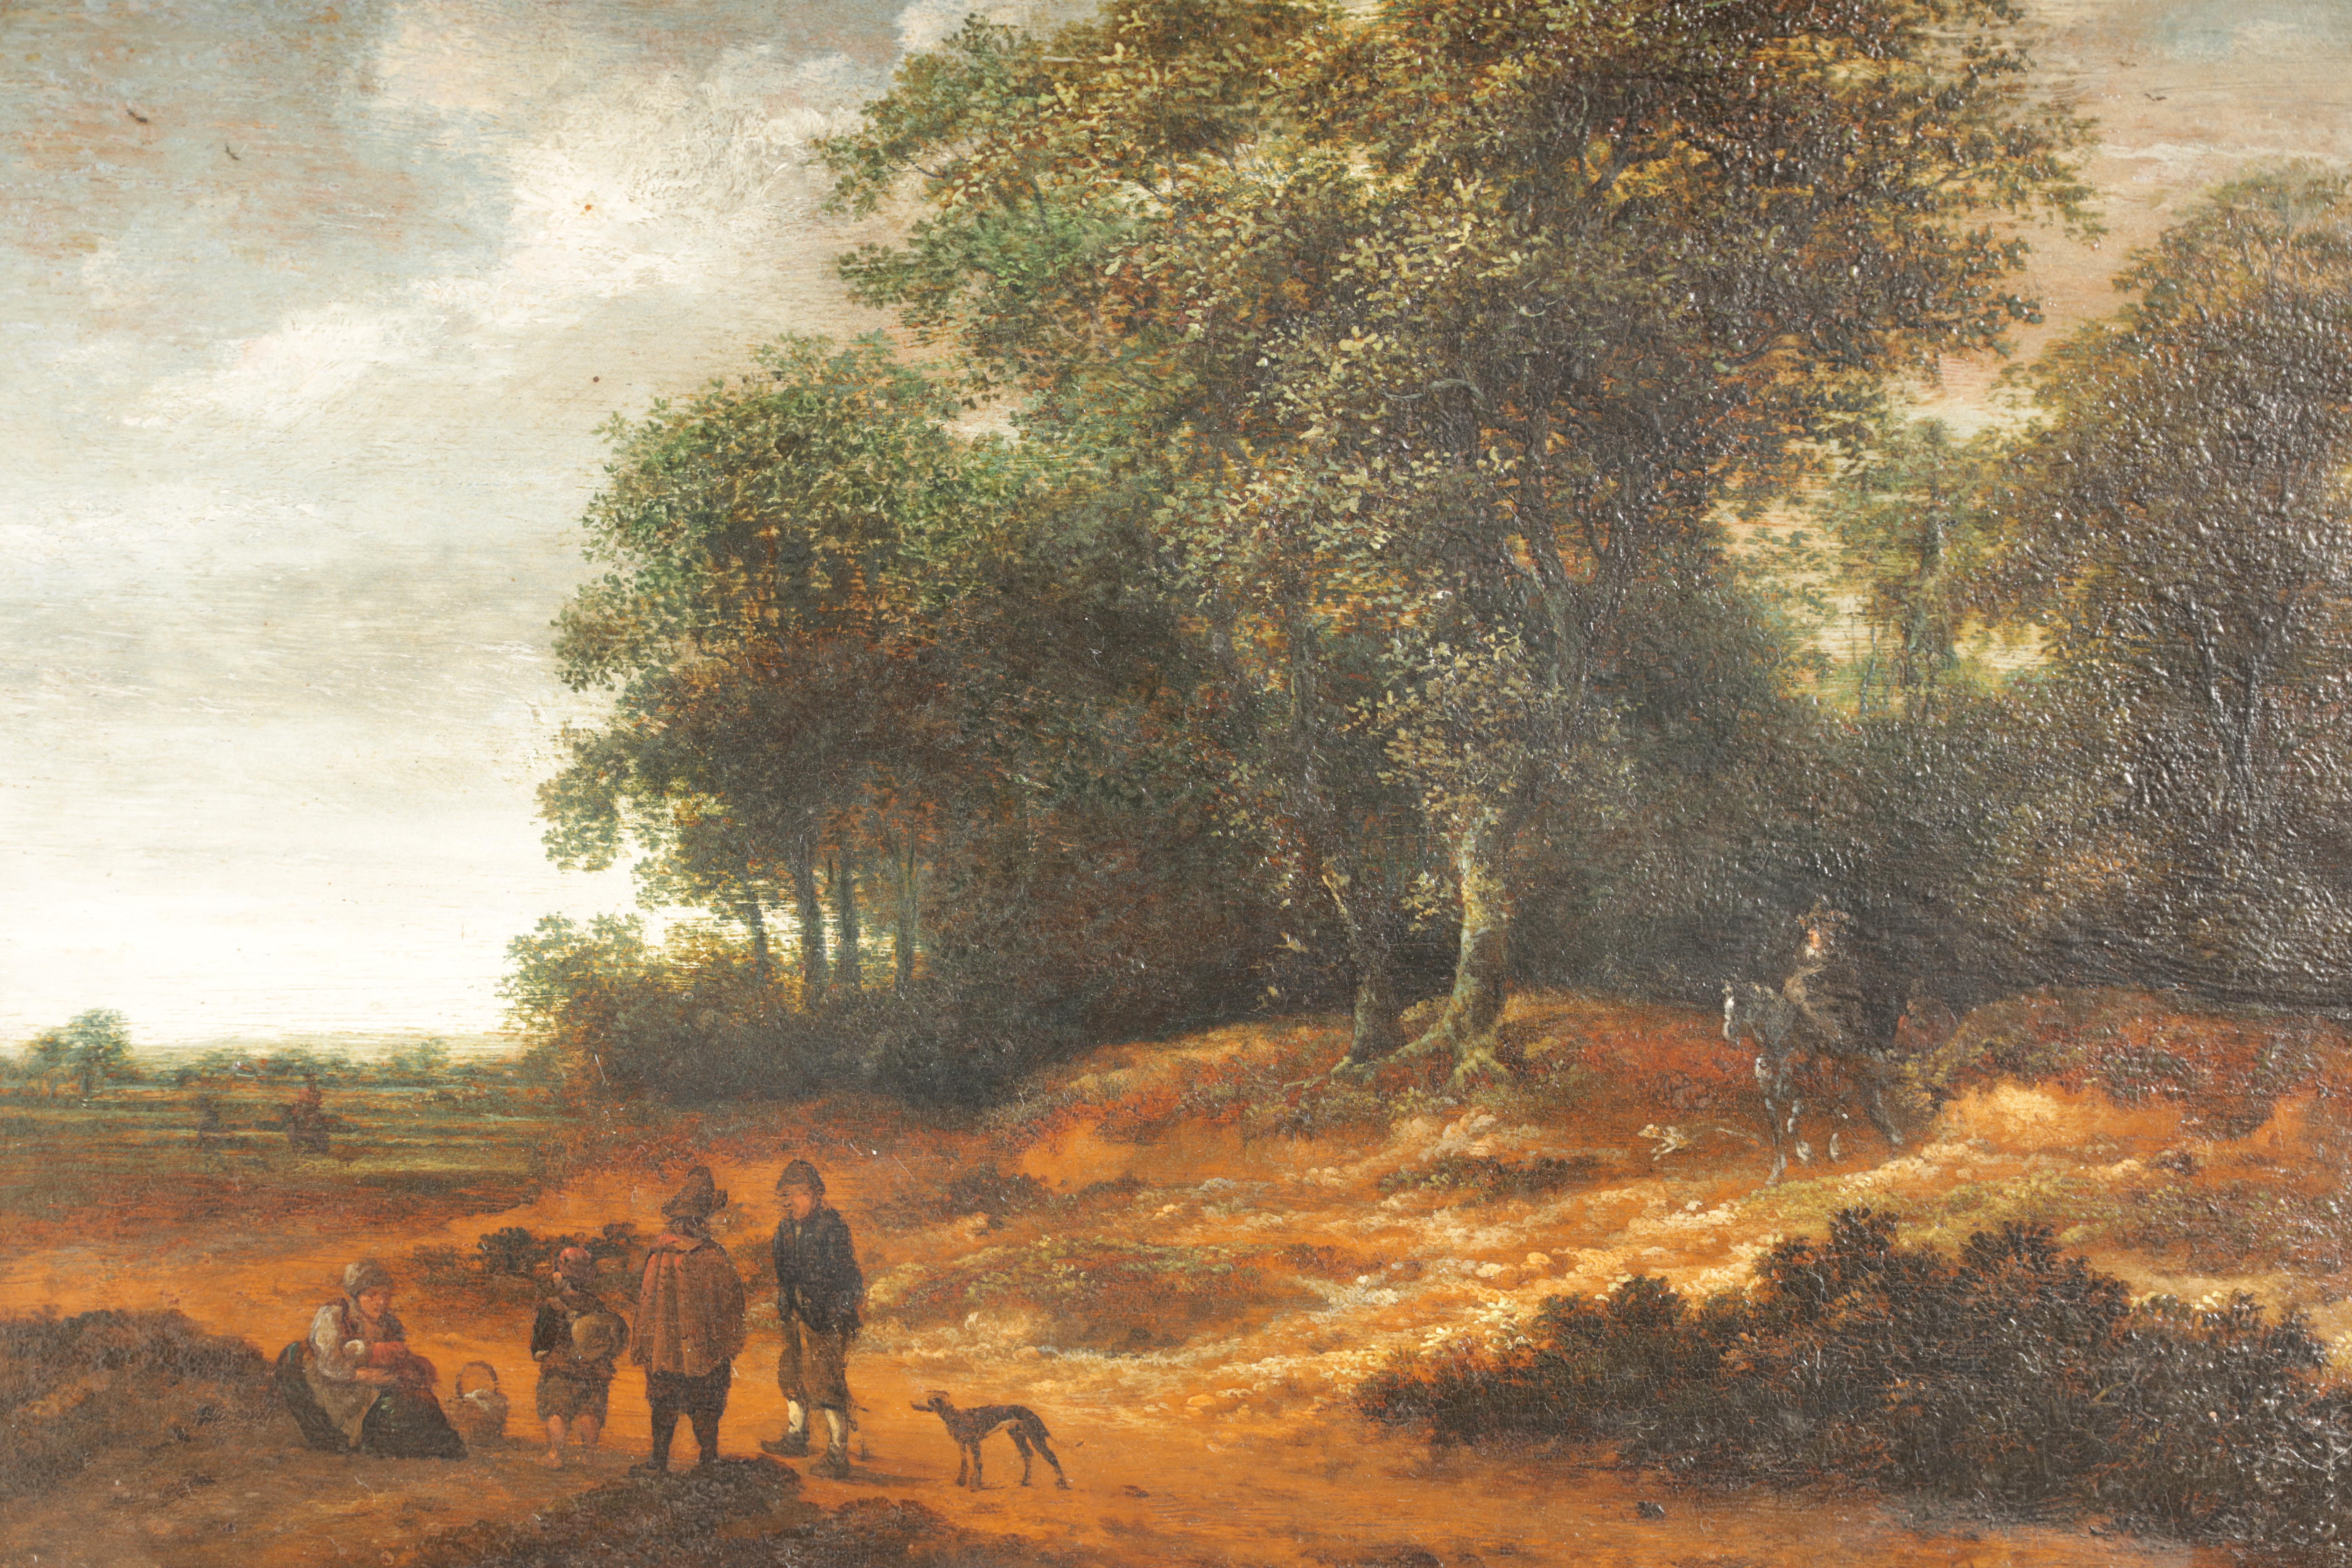 SALOMON ROMBOUTS (1655-1702) A DUTCH 17TH CENTURY OIL ON BOARD depicting figures in a tree-lined - Image 3 of 5